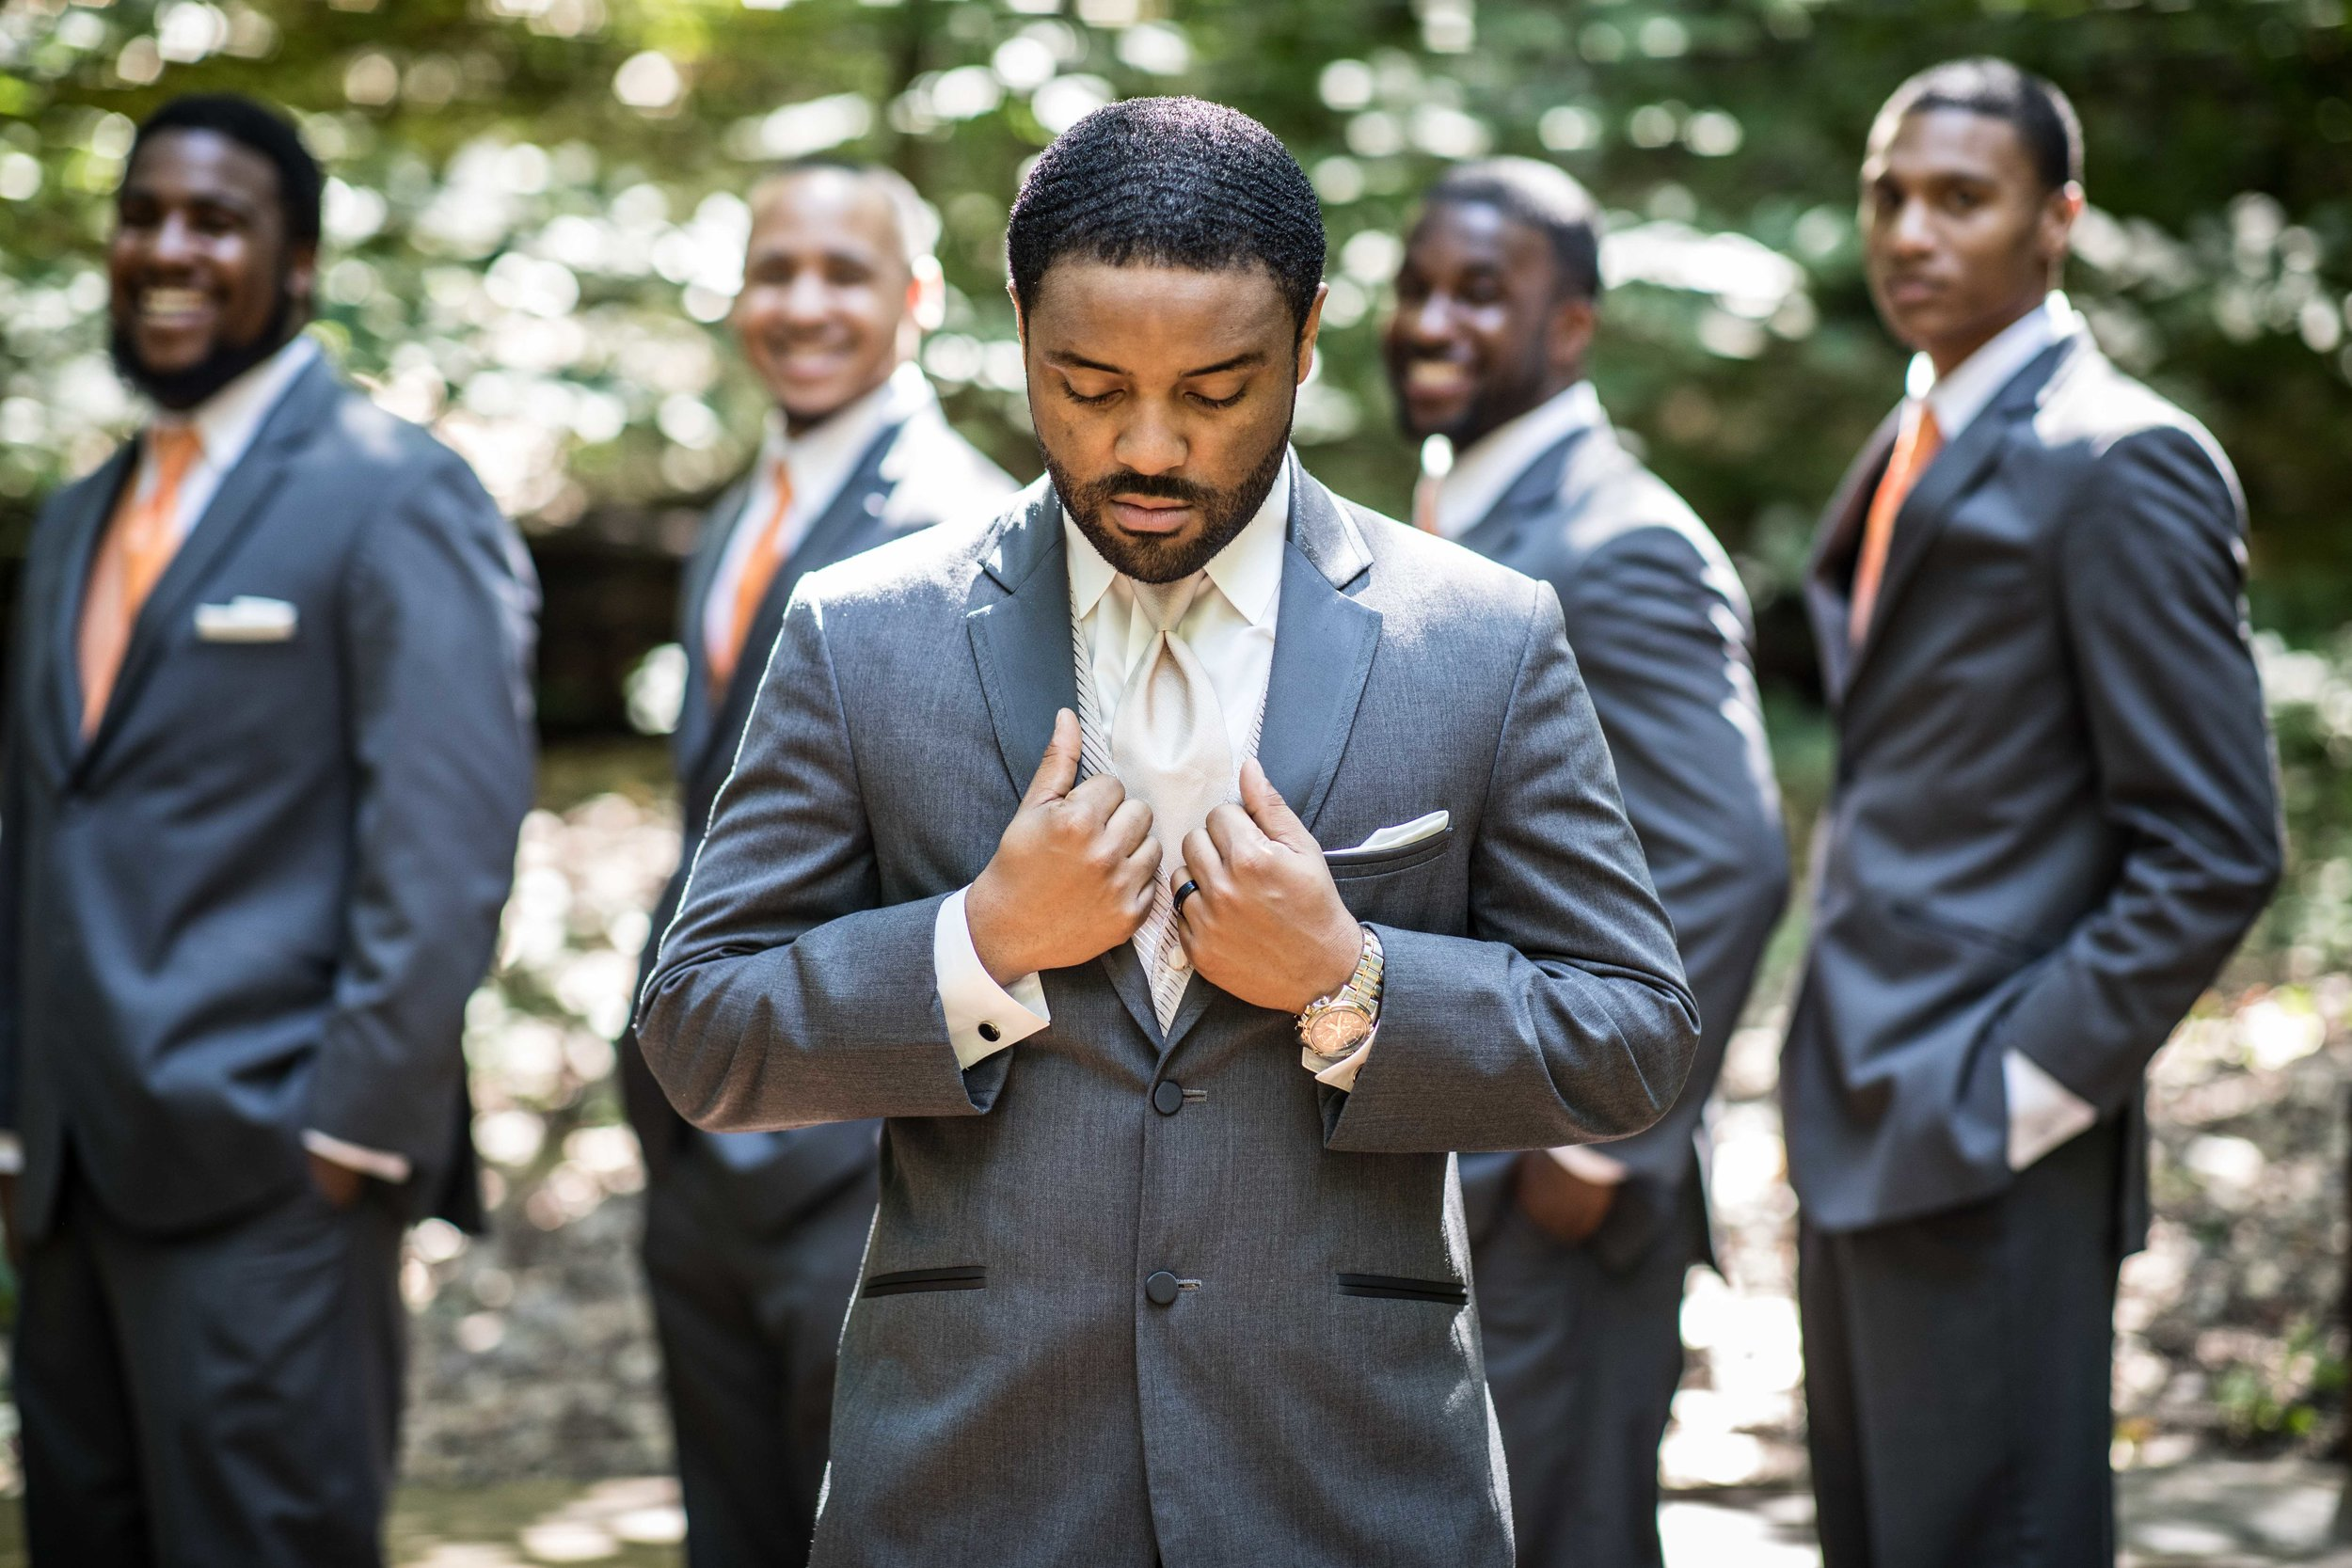 The groom straightening his suit with groomsmen lined up behind him